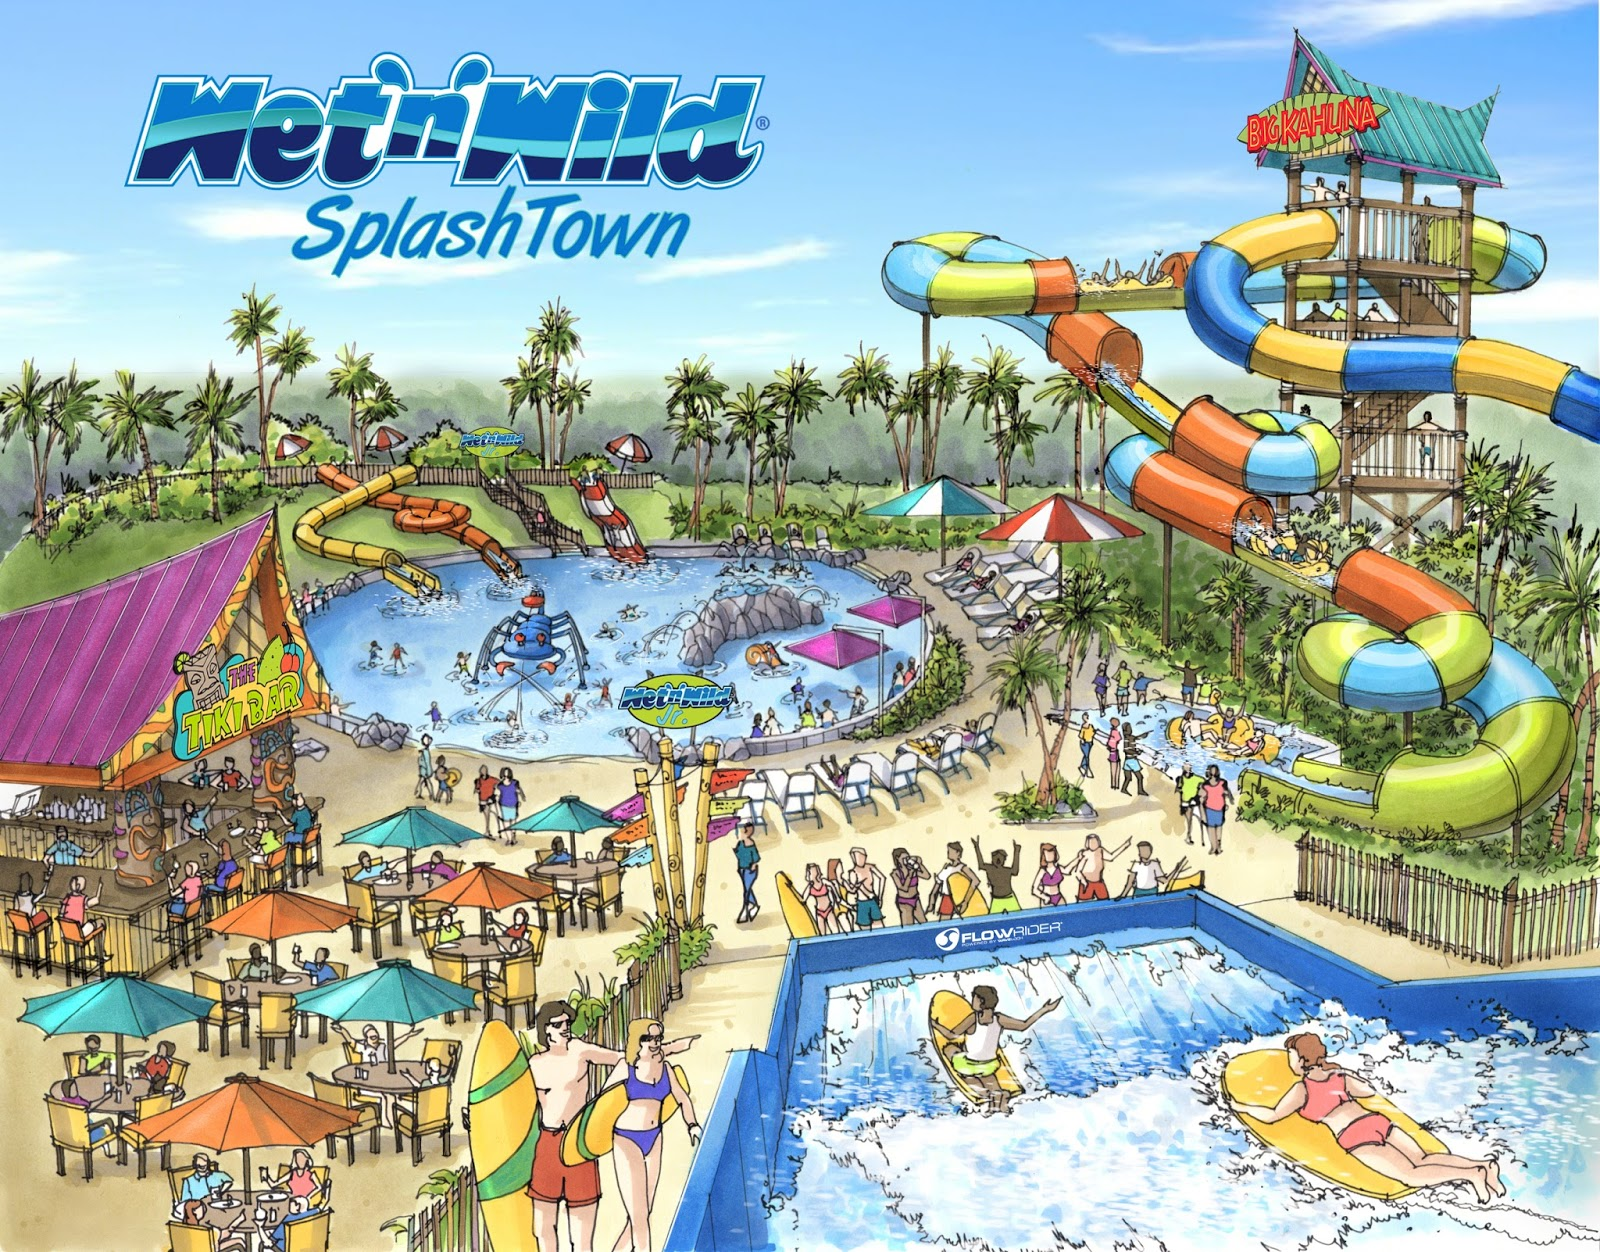 Newsplusnotes Another New Wet N Wild Water Park Opening In 2014